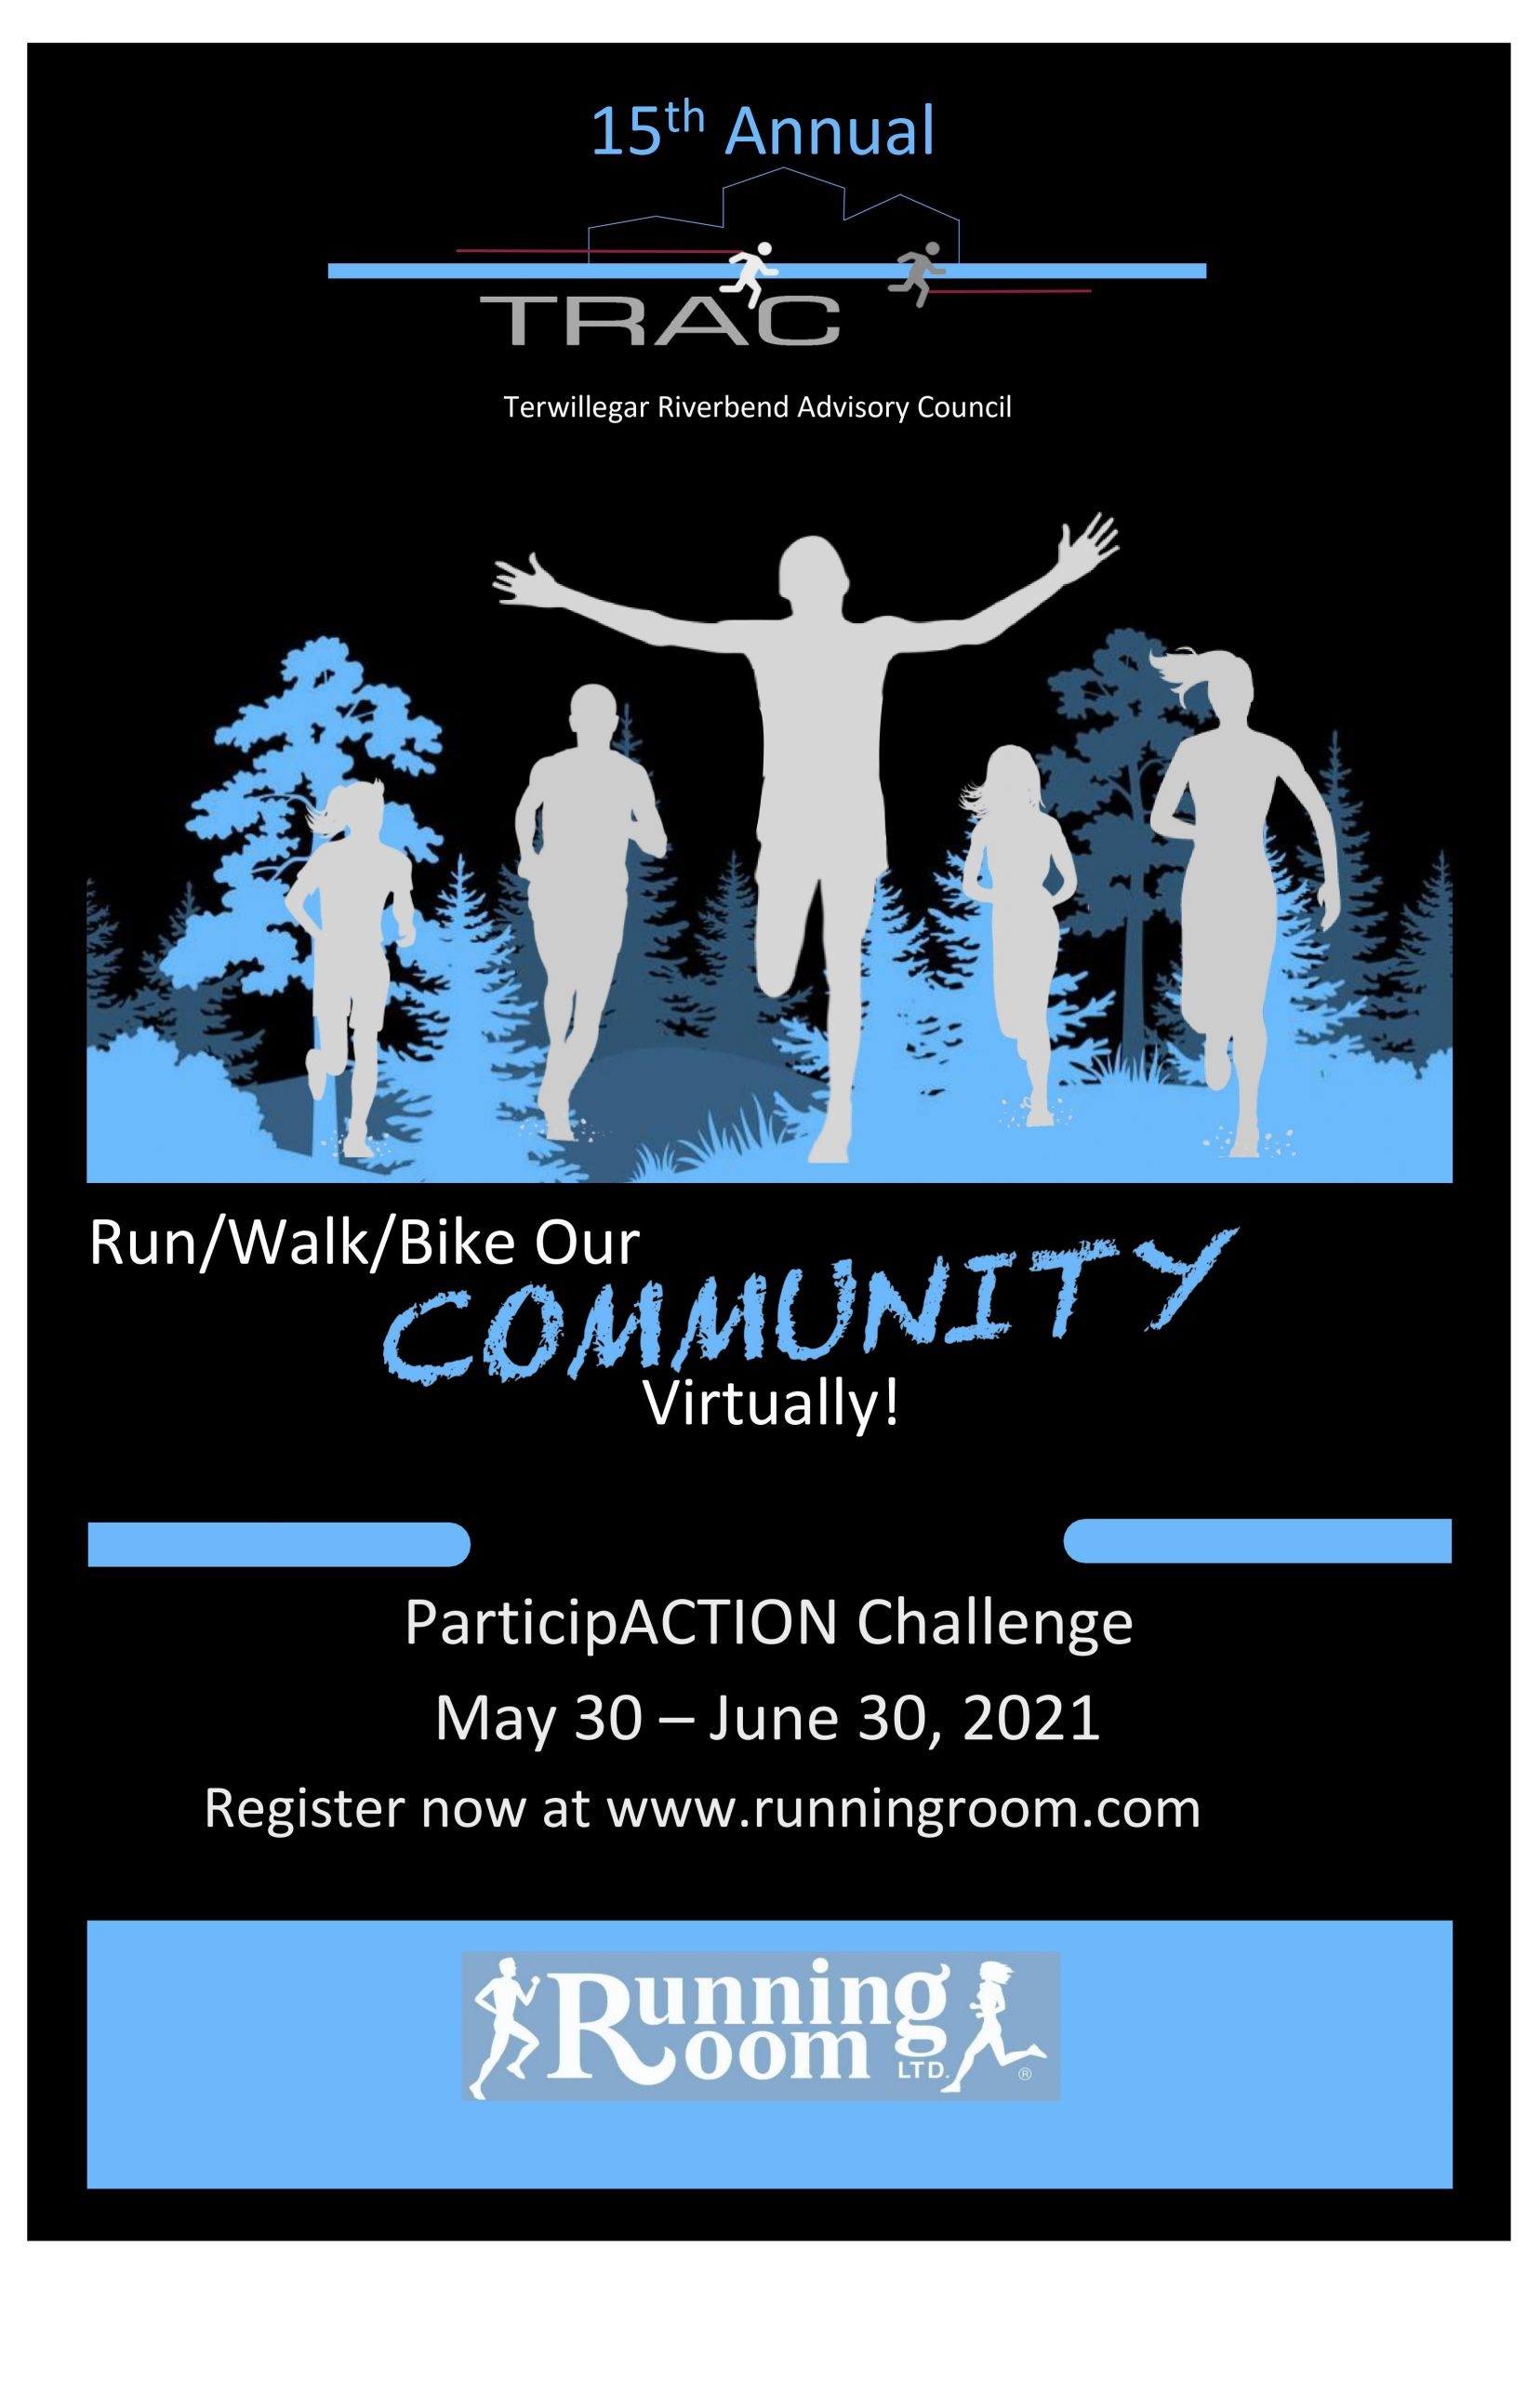 TRAC community run/walk